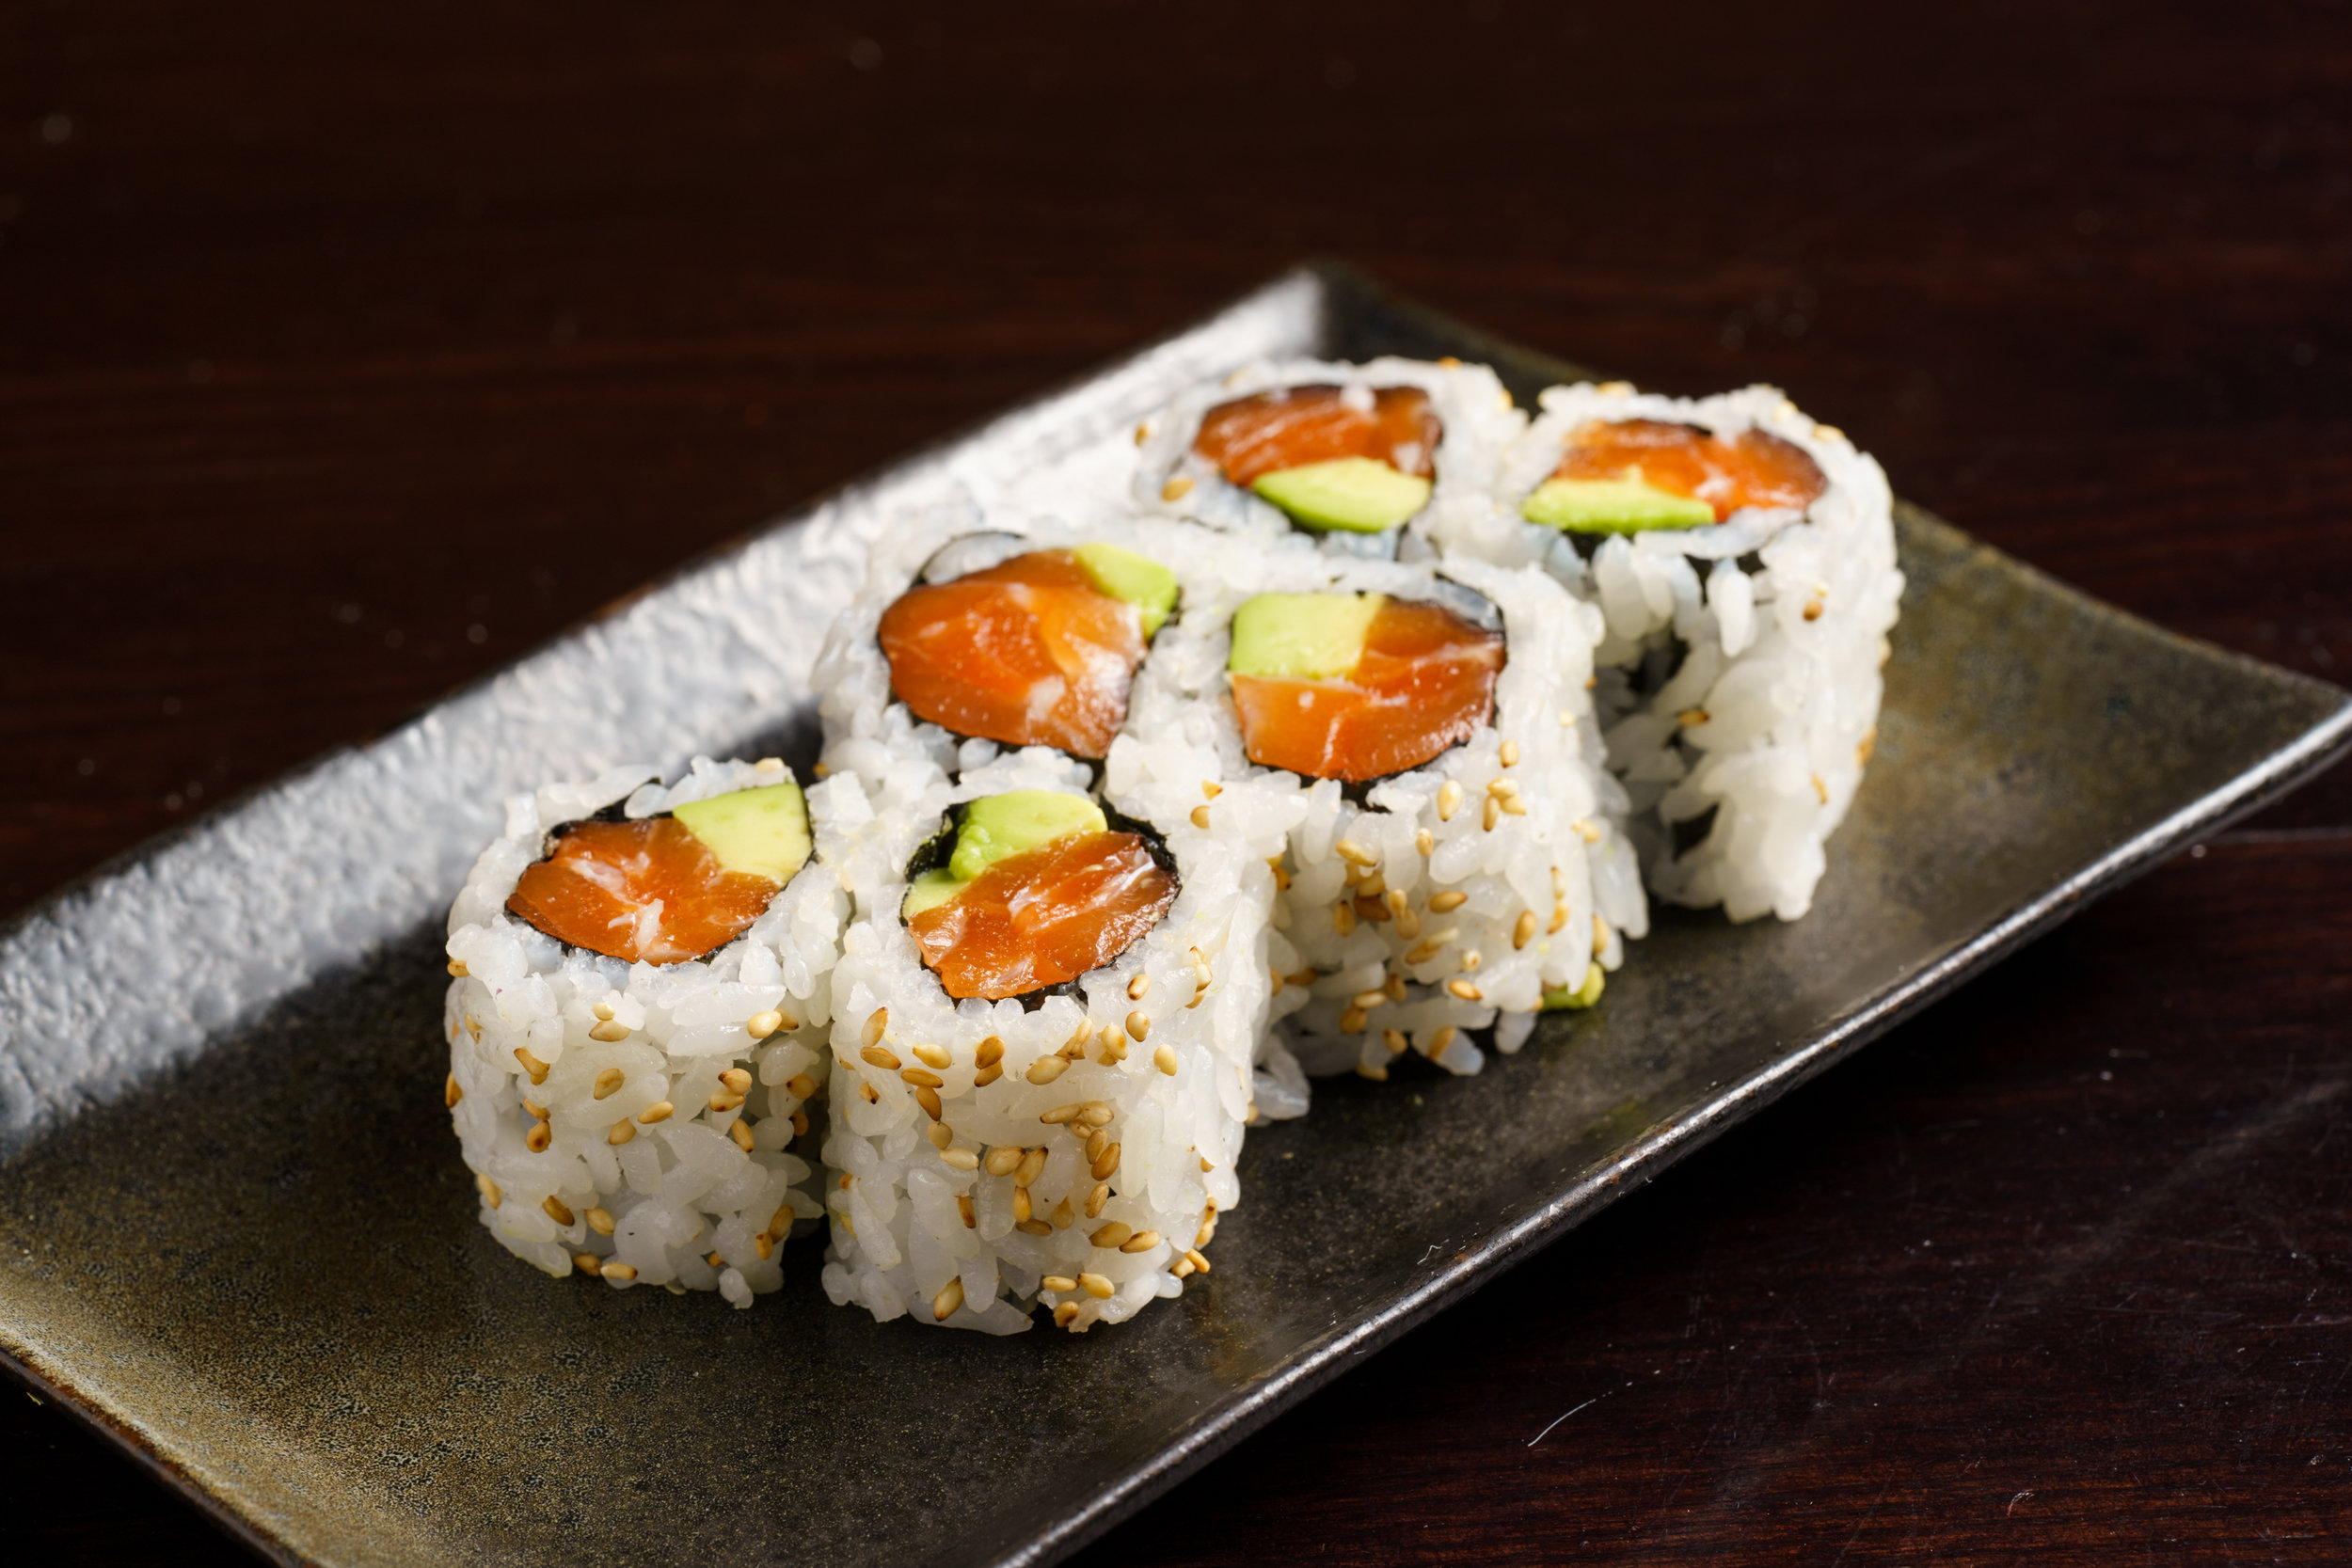 Maki and Avocado Roll